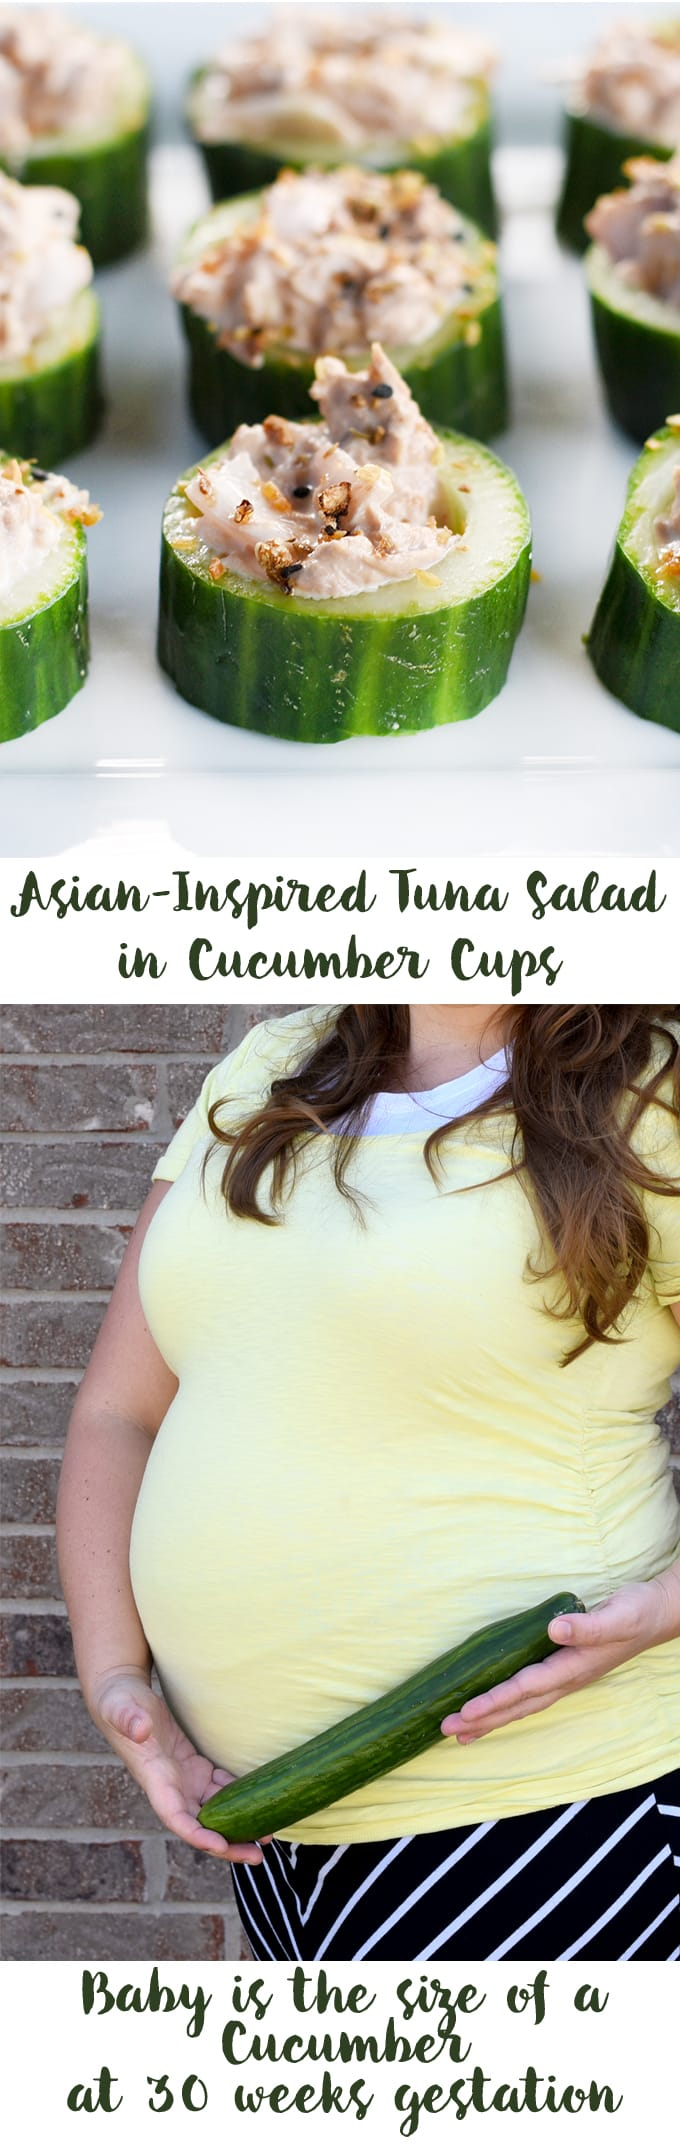 Asian-Inspired Tuna Salad in Cucumber Cups! This is a great recipe to celebrate the 30th week of pregnancy!